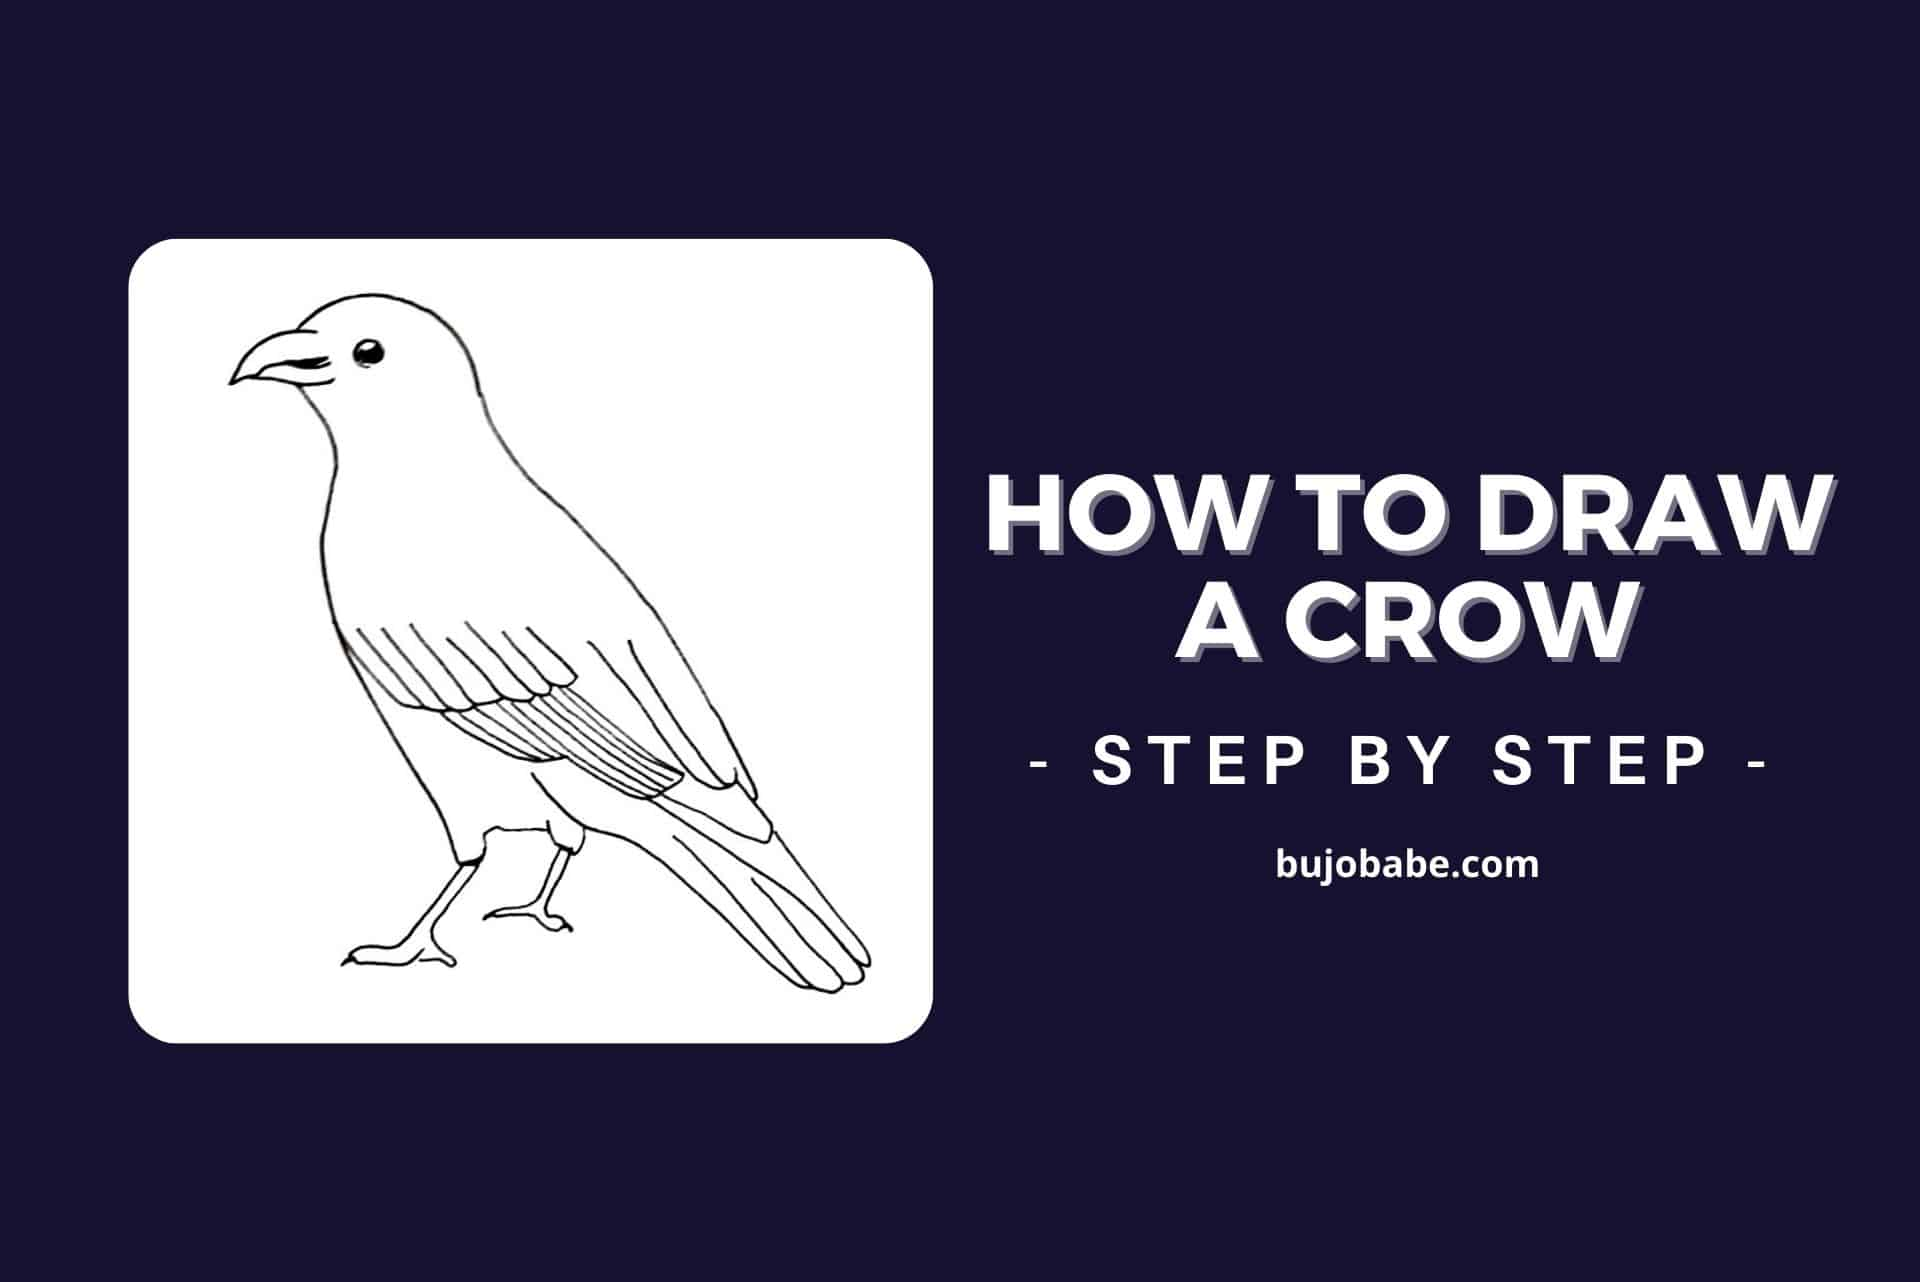 how to draw a crow step by step